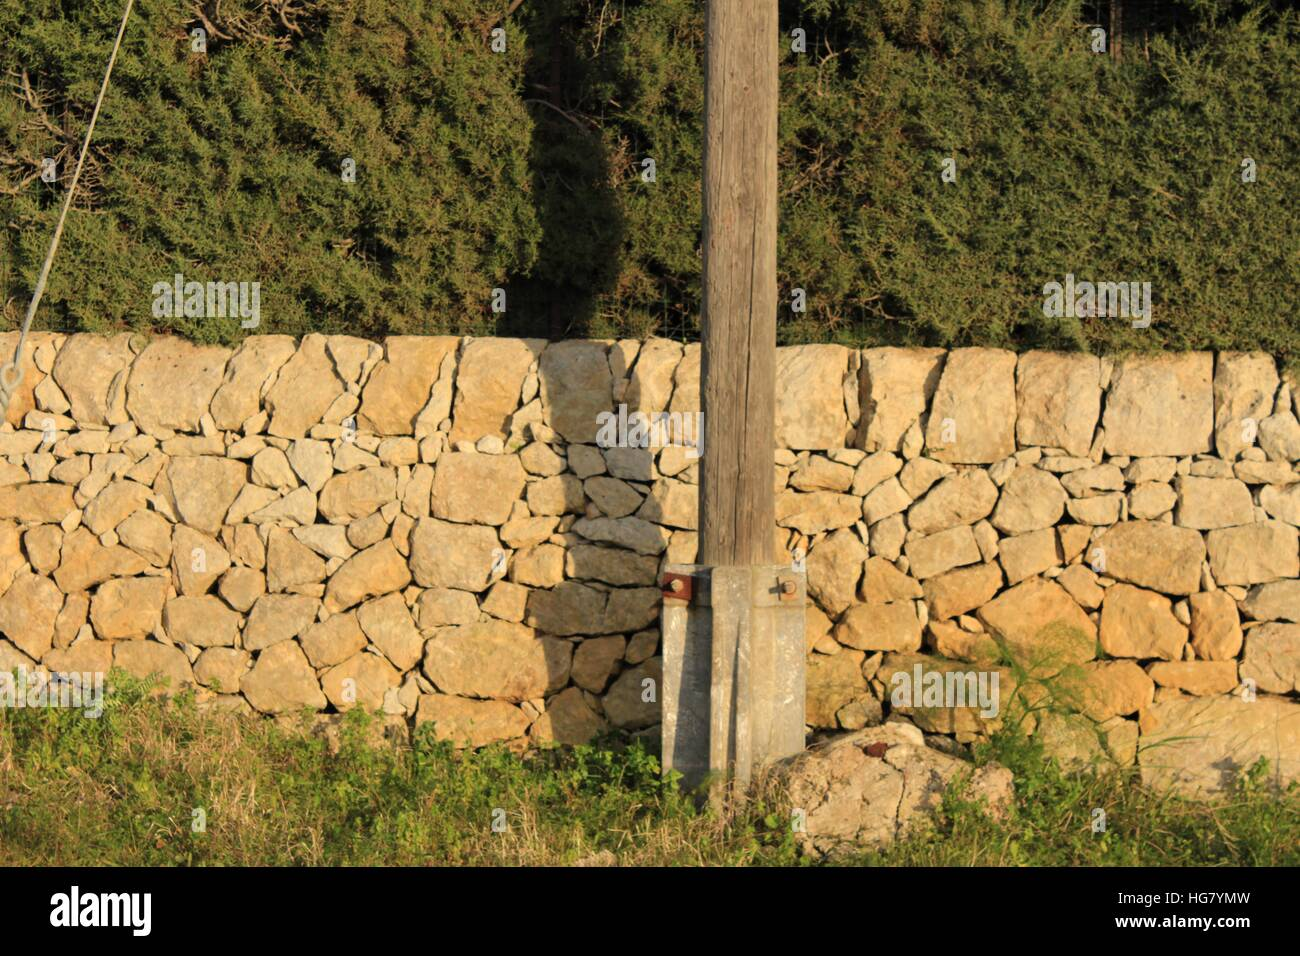 Beautiful drystone wall, hedging, and the base of a telephone poll with large rock, and wild fennel. - Stock Image